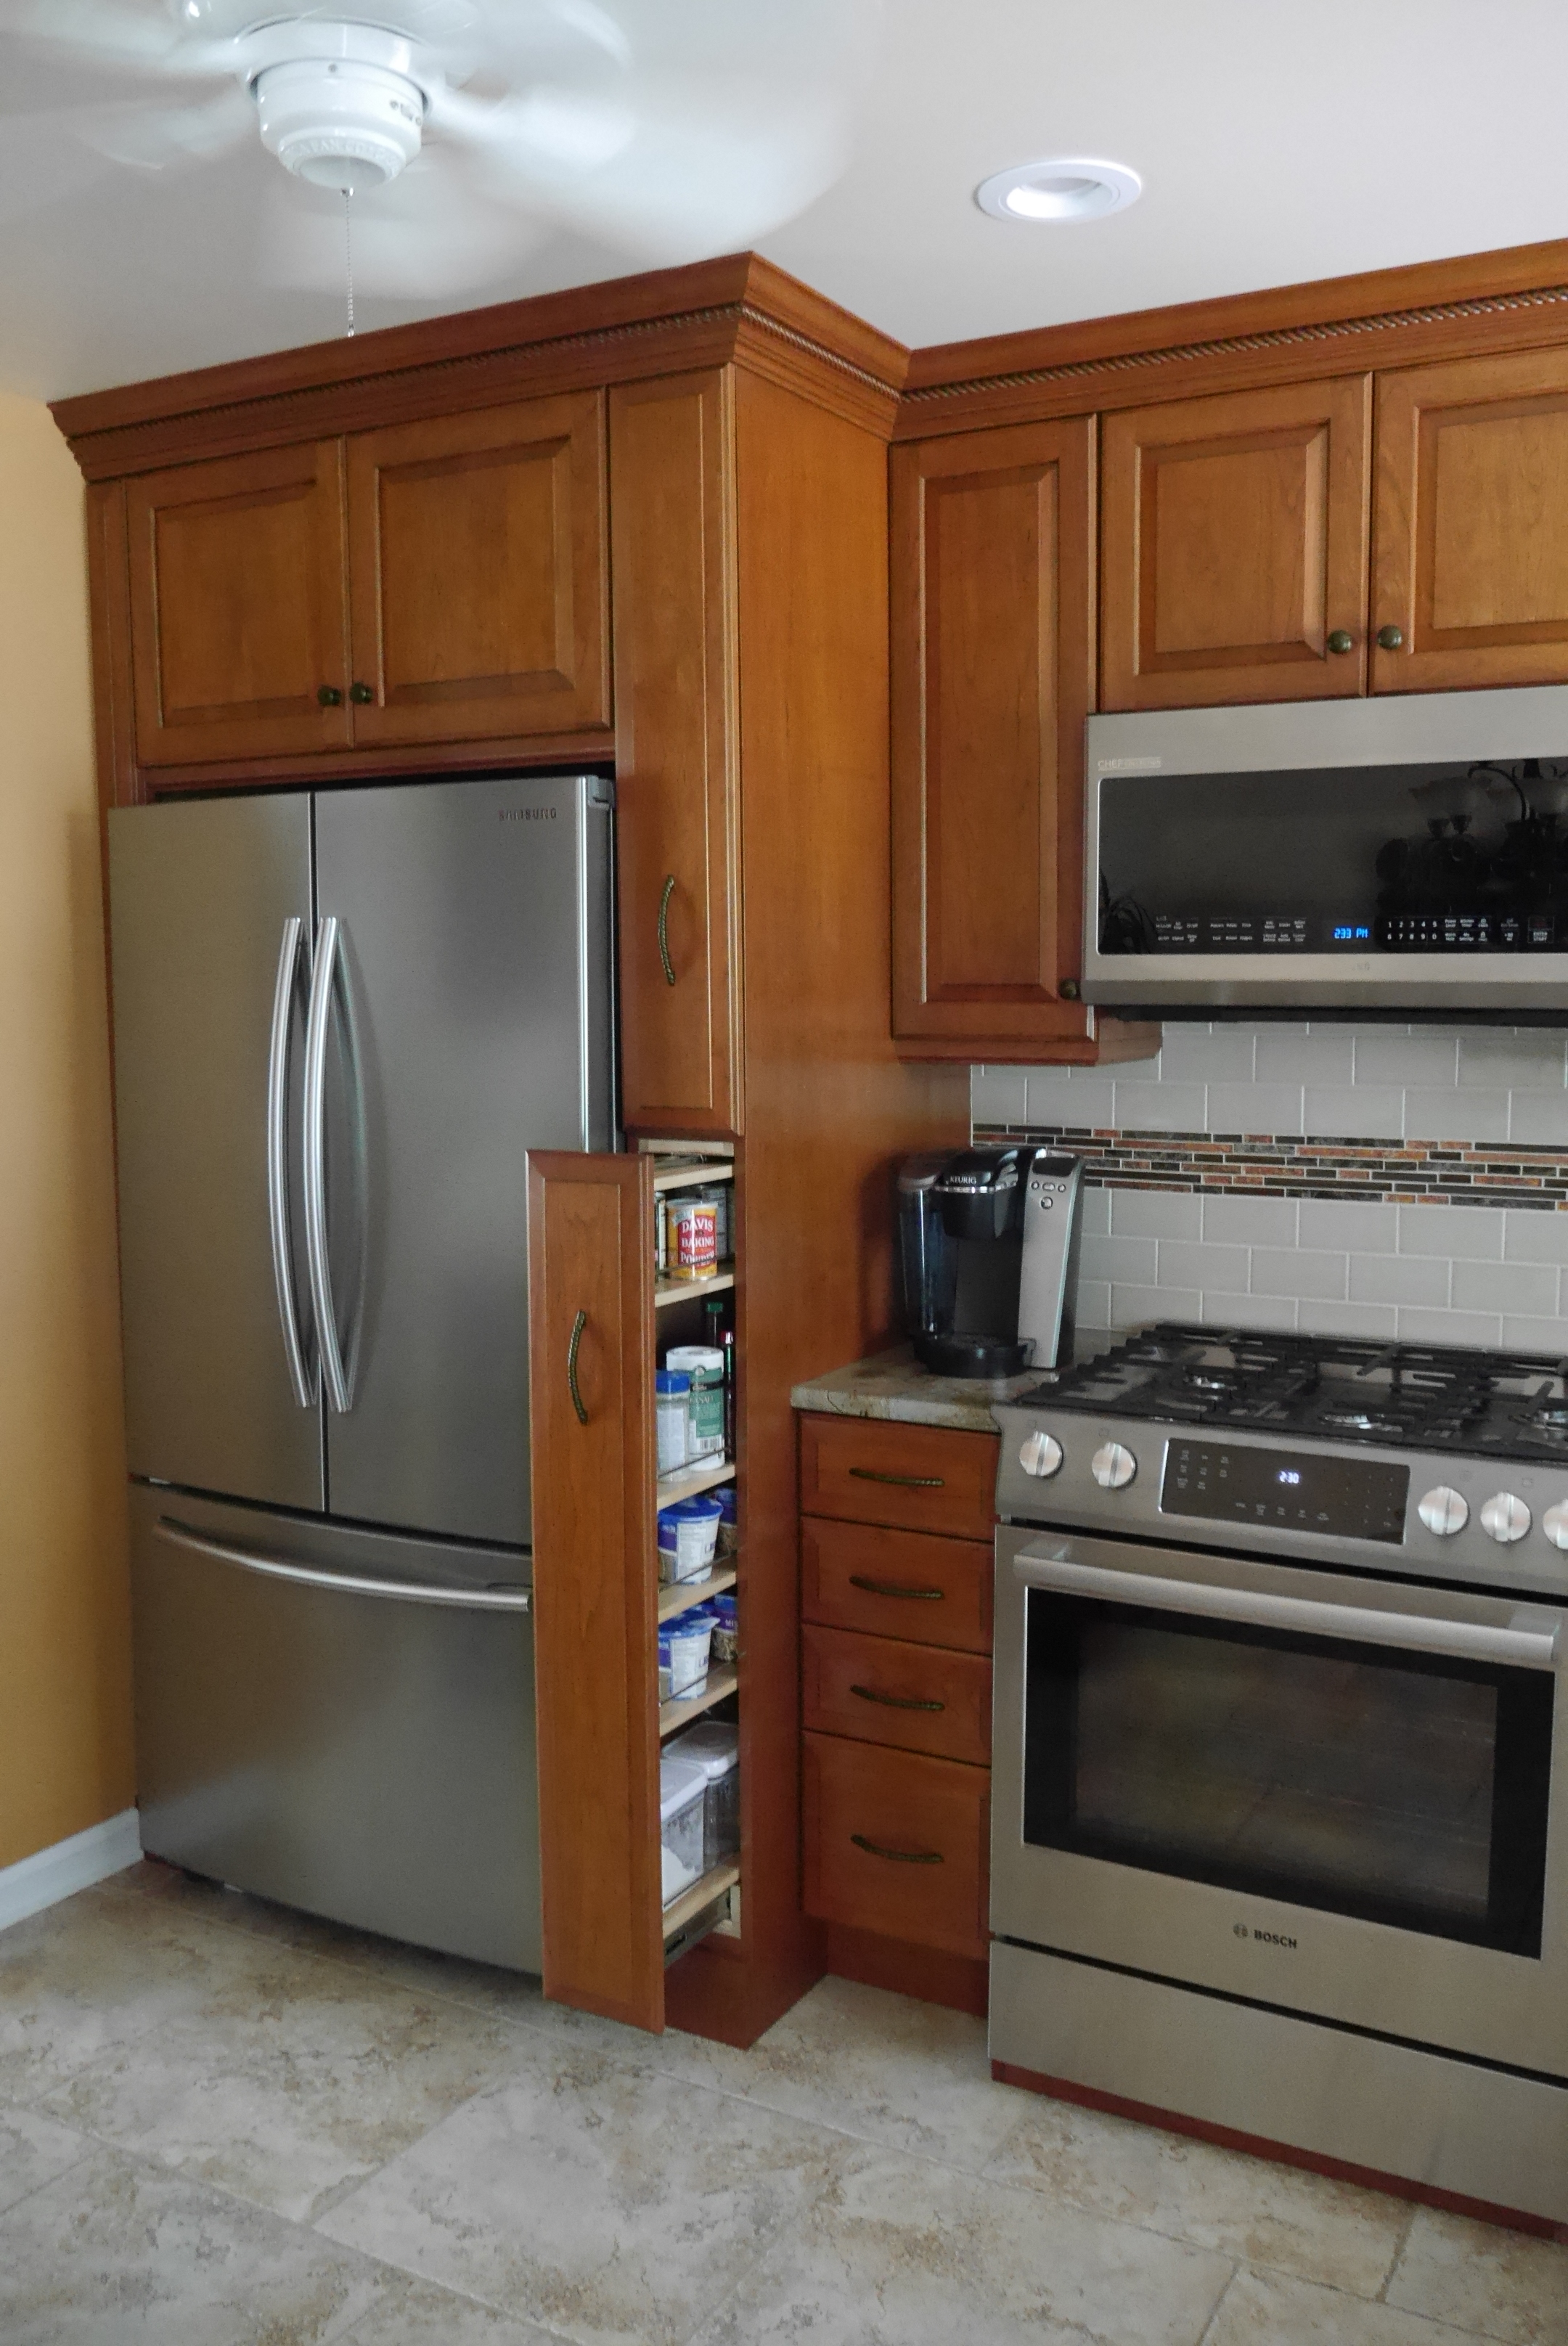 Adelphi custom kitchen installation by Groundswell Contracting